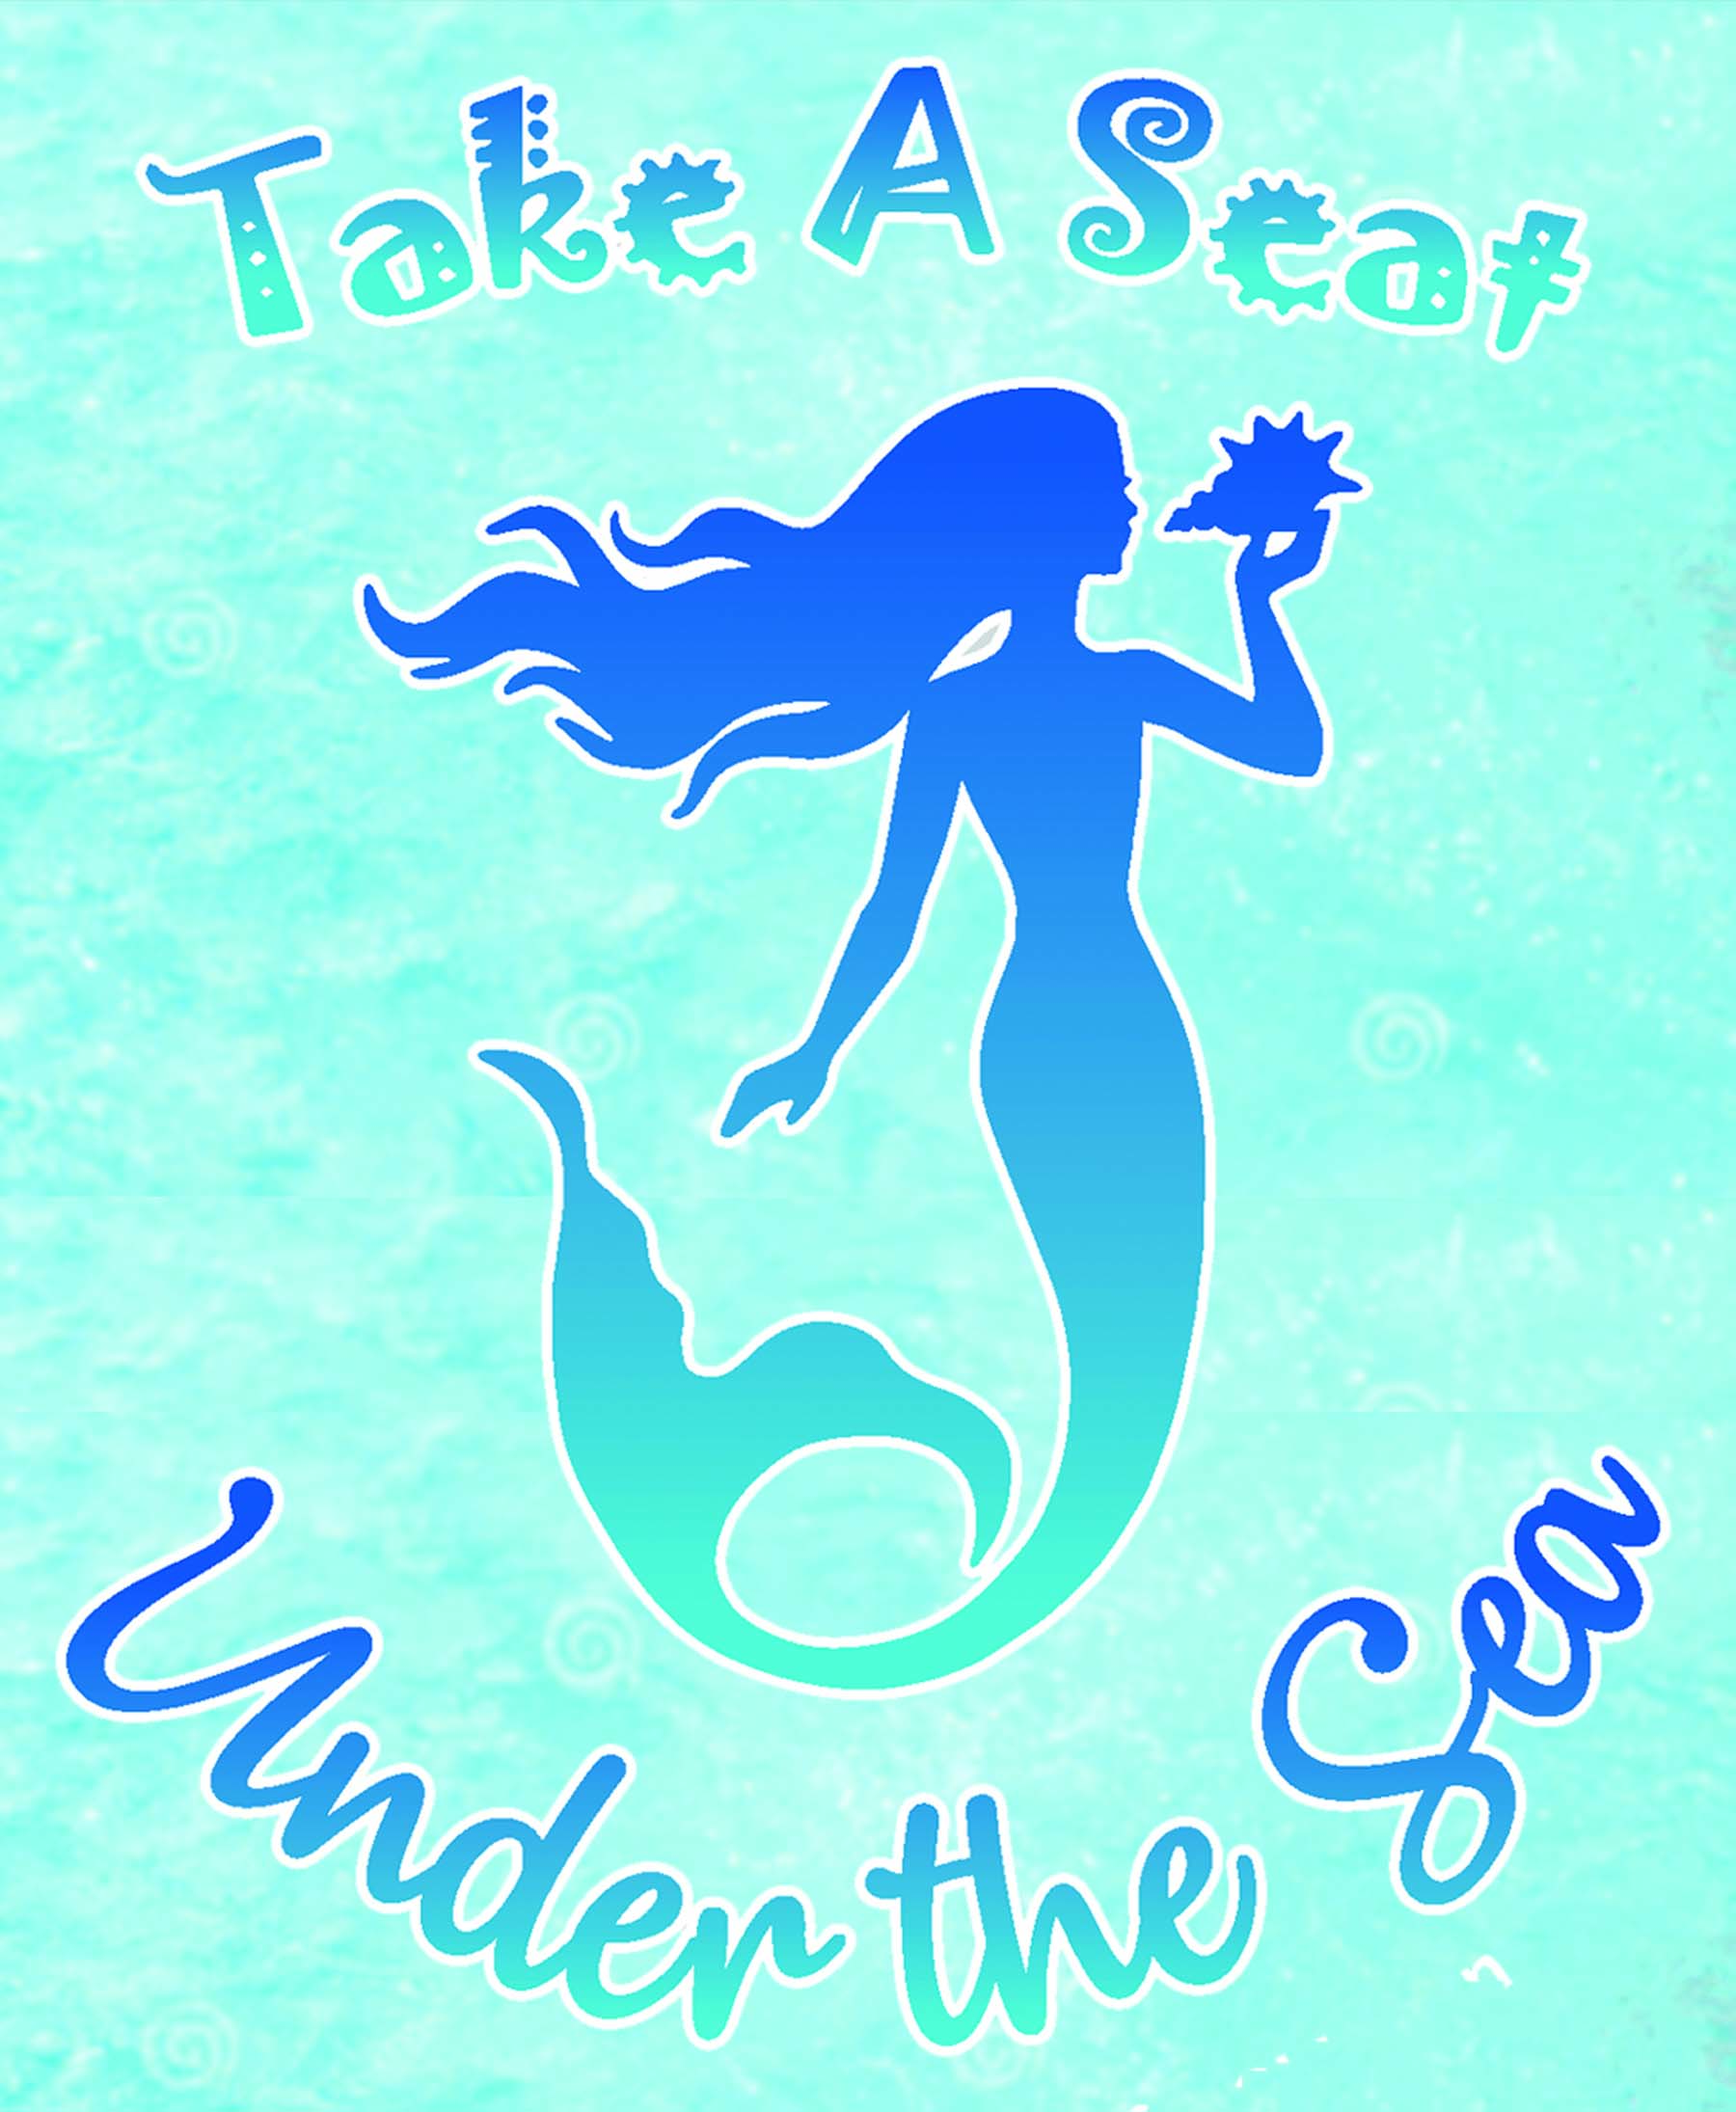 Under The Sea For Social Media 2 2 - Take A Seat Under the Sea 2018